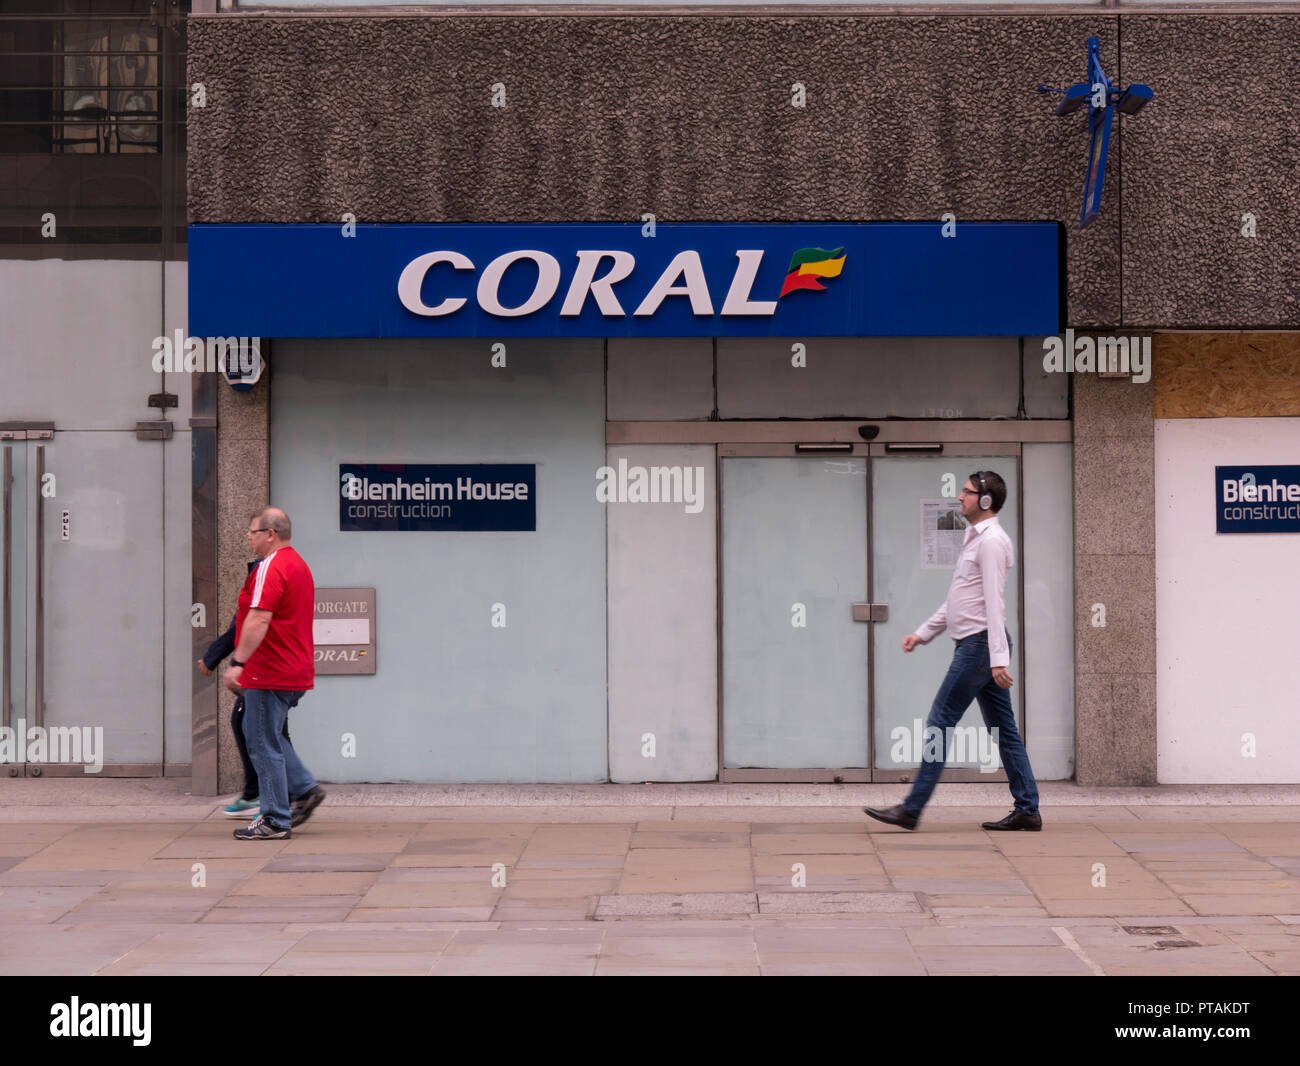 Coral betting shop redditch standard ssac betting tips